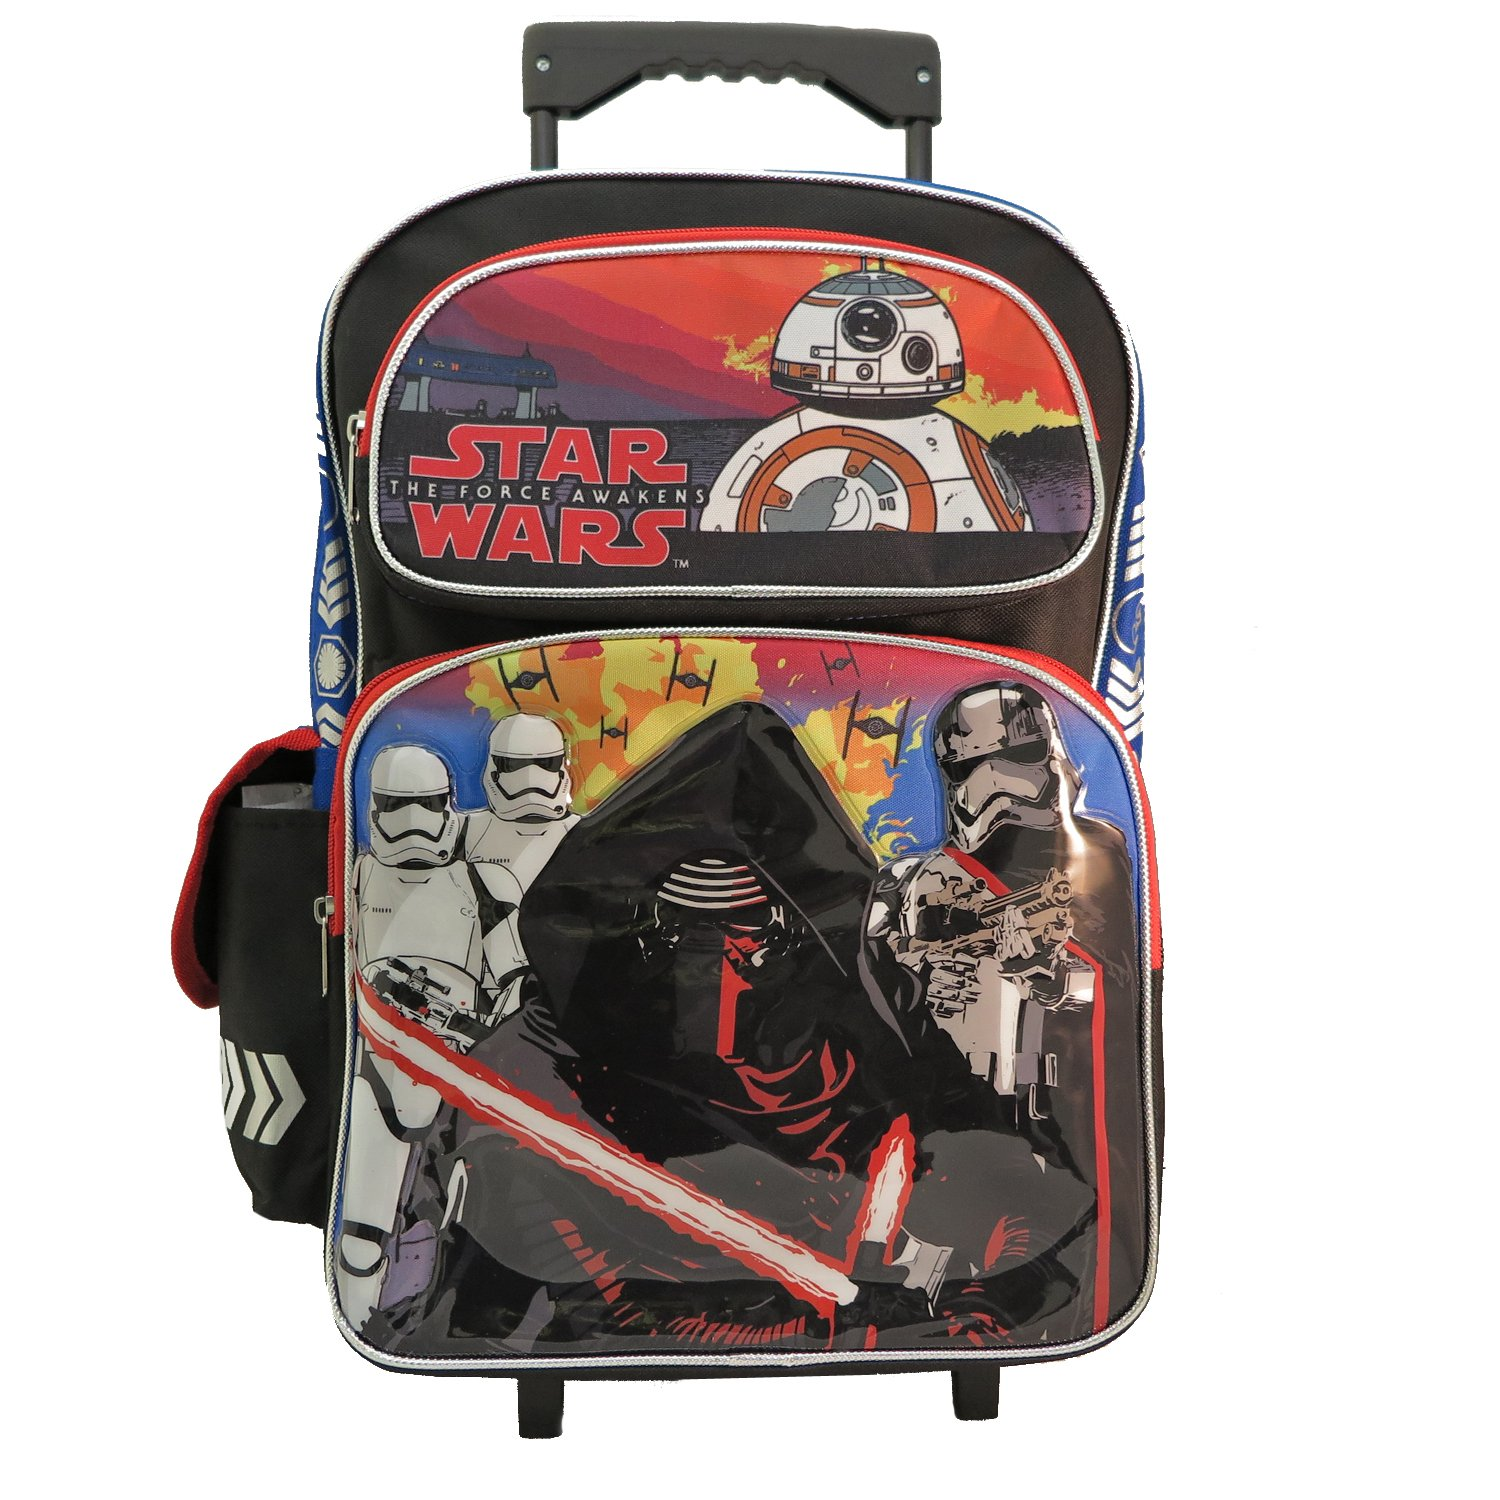 4dc11fbc62 Large Rolling Backpack - Star Wars - The Force Awakens BB8 New 663957   Computer and Video Games - Amazon.ca